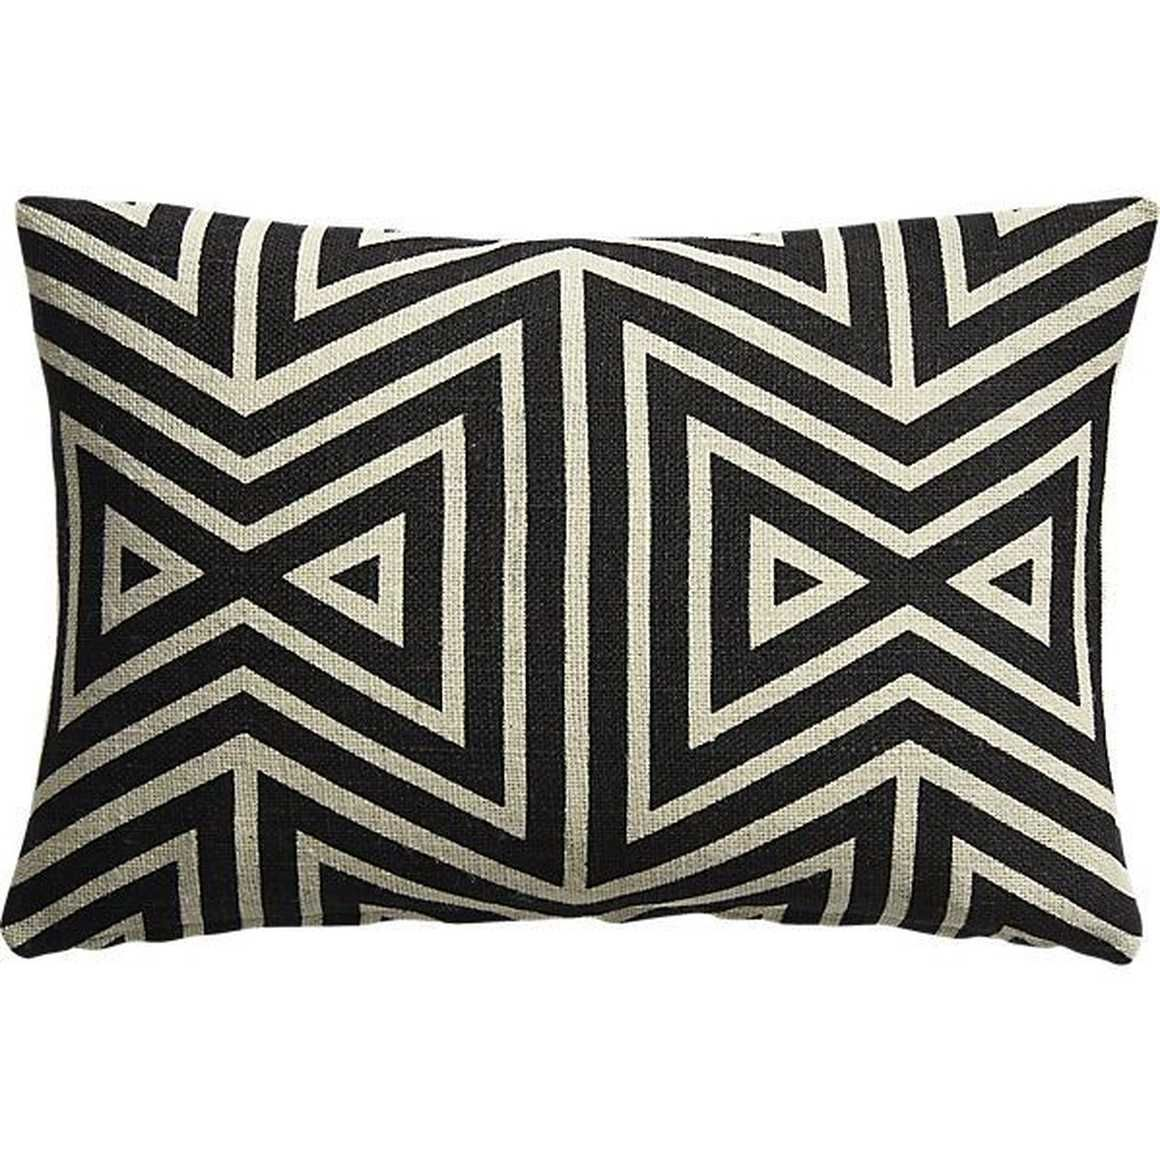 Pin On African Decor African Print Decor